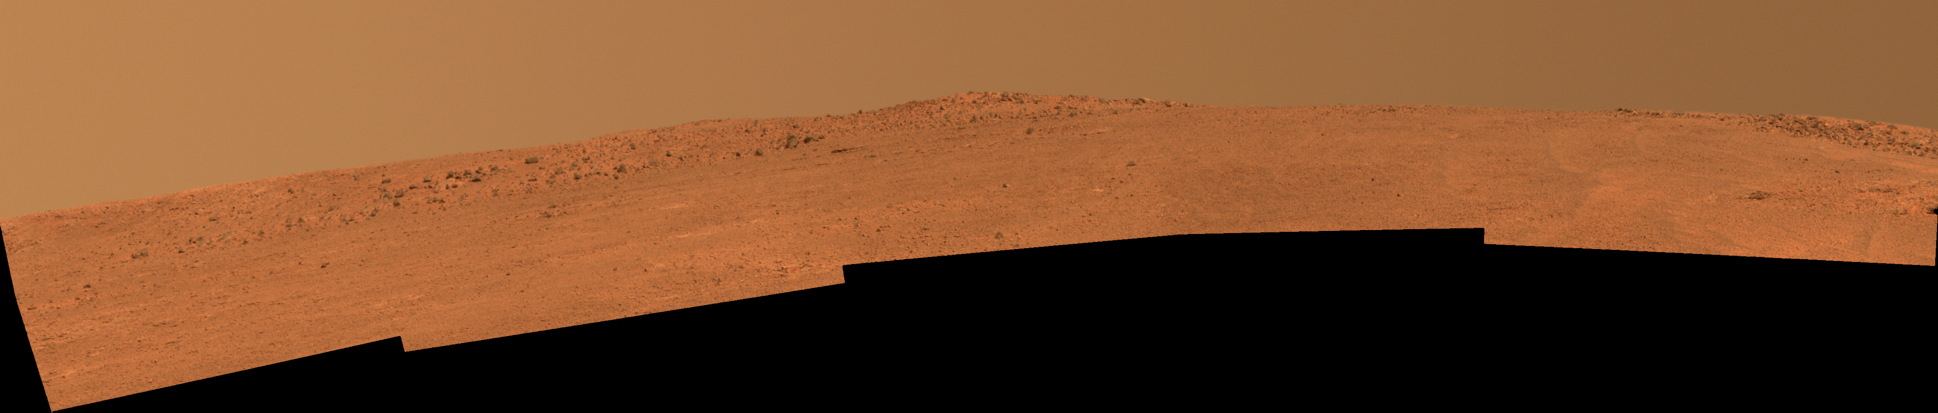 Opportunity's Southward View of 'McClure-Beverlin Escarpment' on Mars